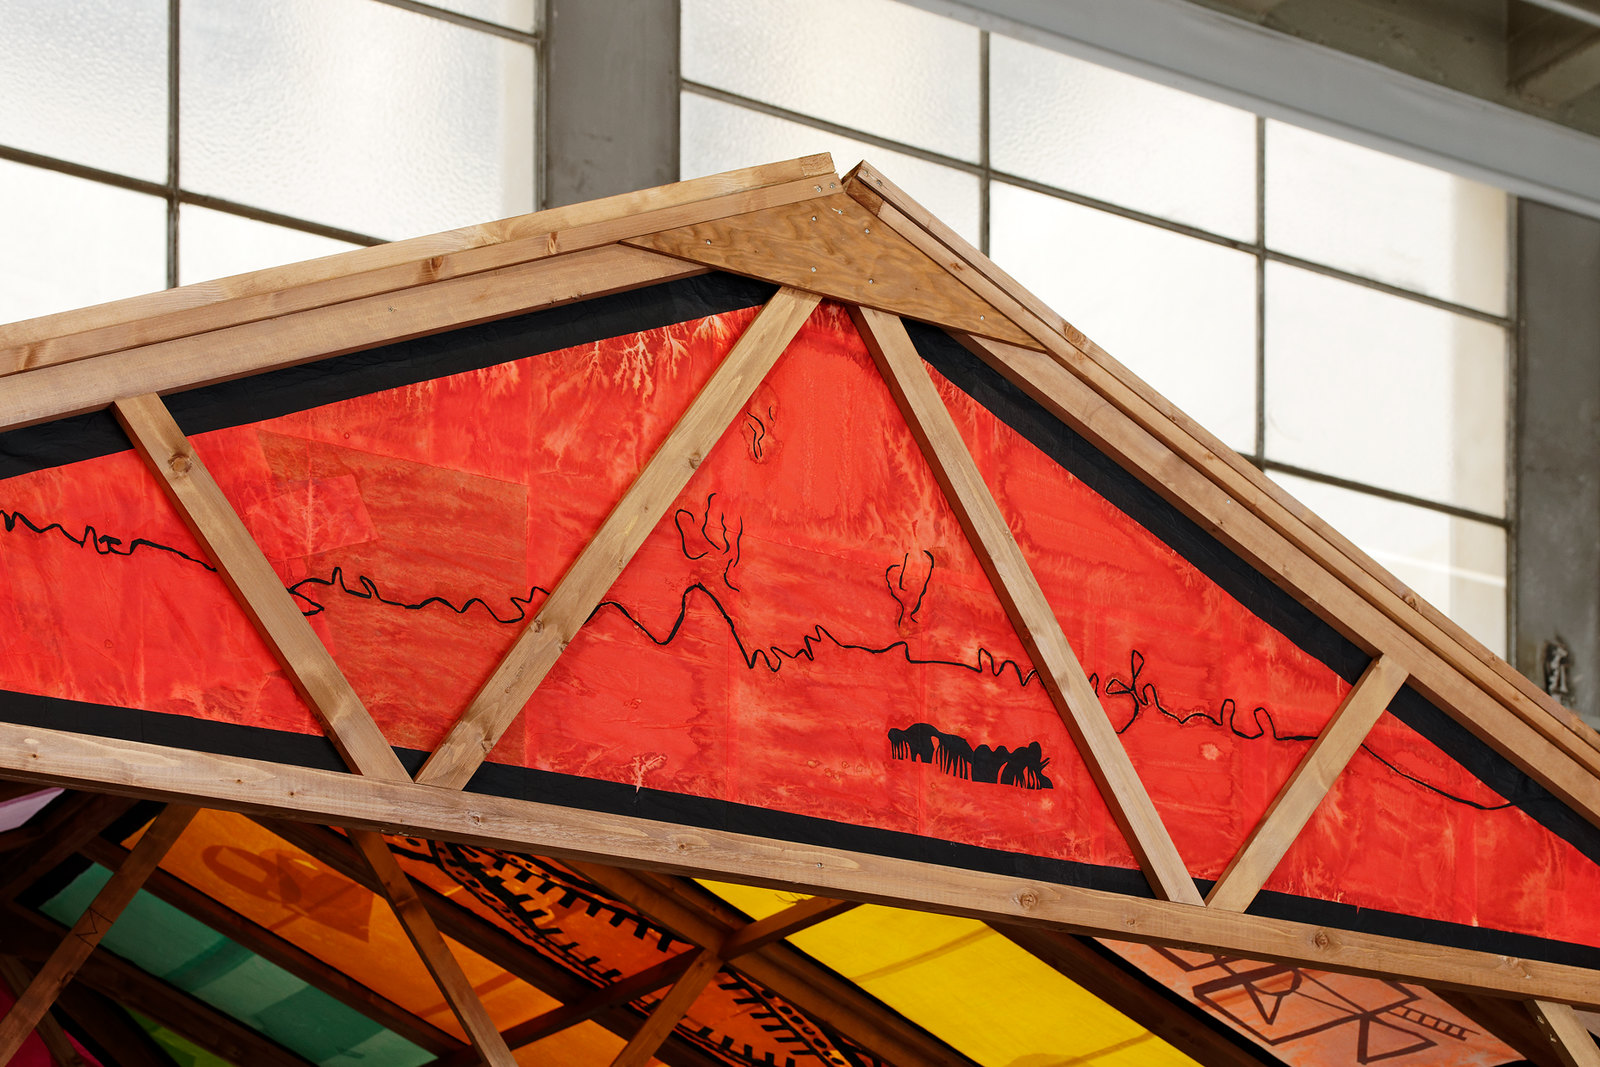 a detail of the front triangular roof panel. It's red with a black outline running horizontally, suggesting a burning horizon with mangrove roots or an animal herd in the foreground